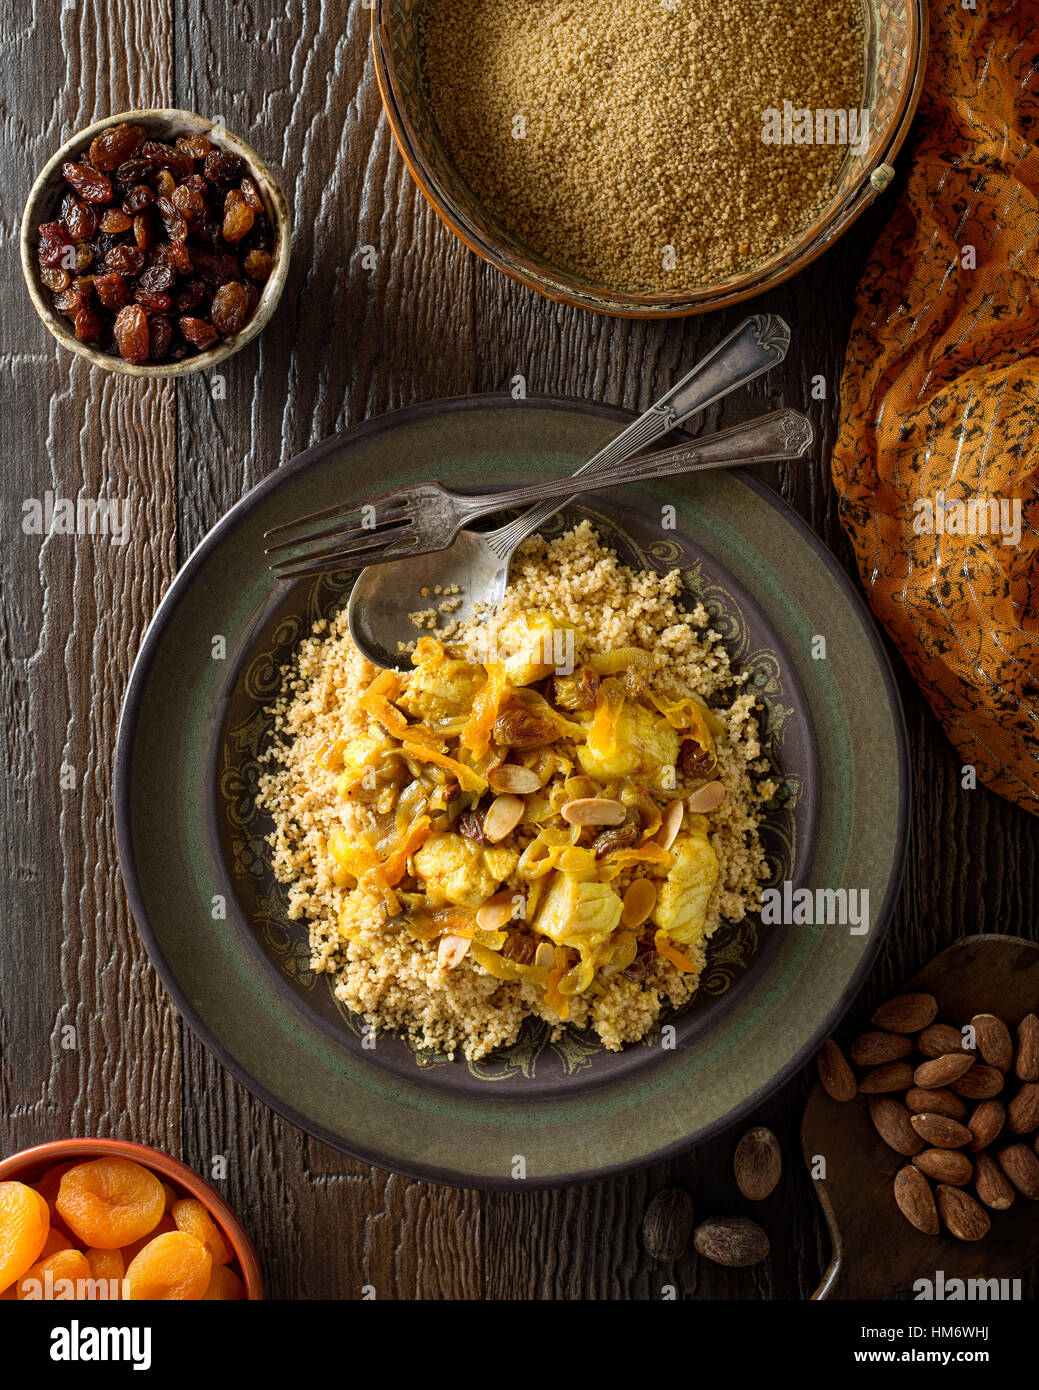 Delicious homemade Tunisian style couscous with fish, raisins, apricots, and toasted almond. - Stock Image